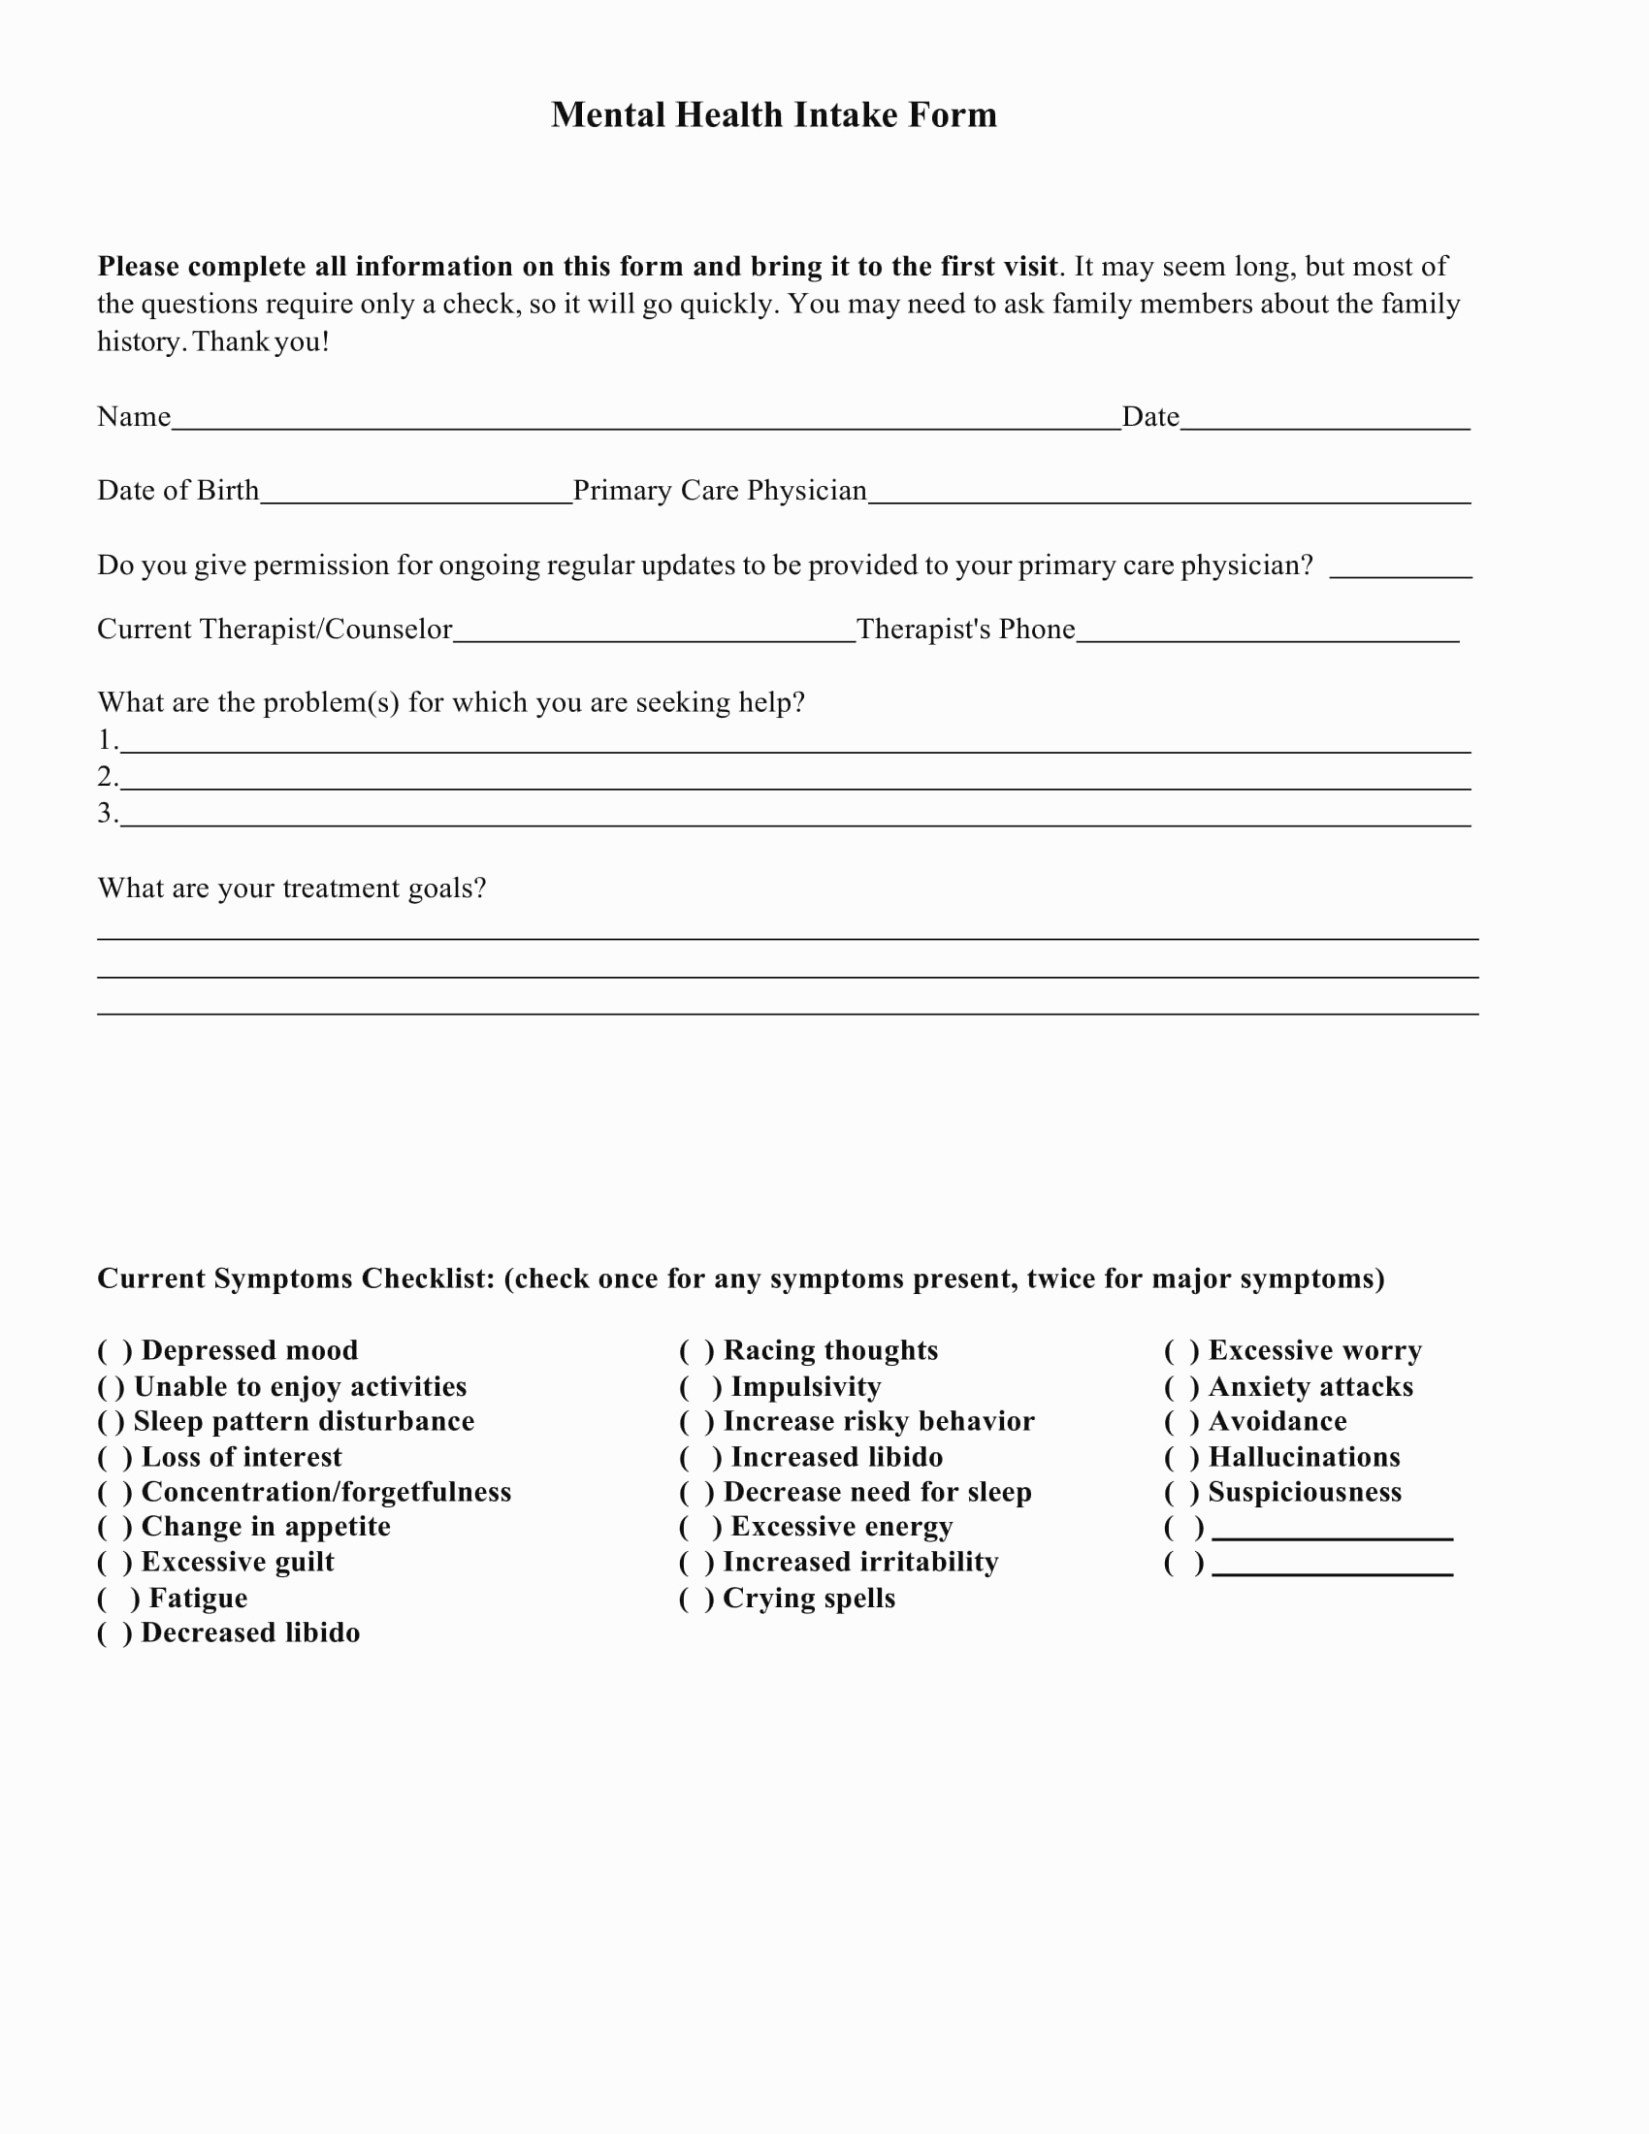 Mental Health Intake form Template Inspirational Eliminate Your Fears and Doubts About